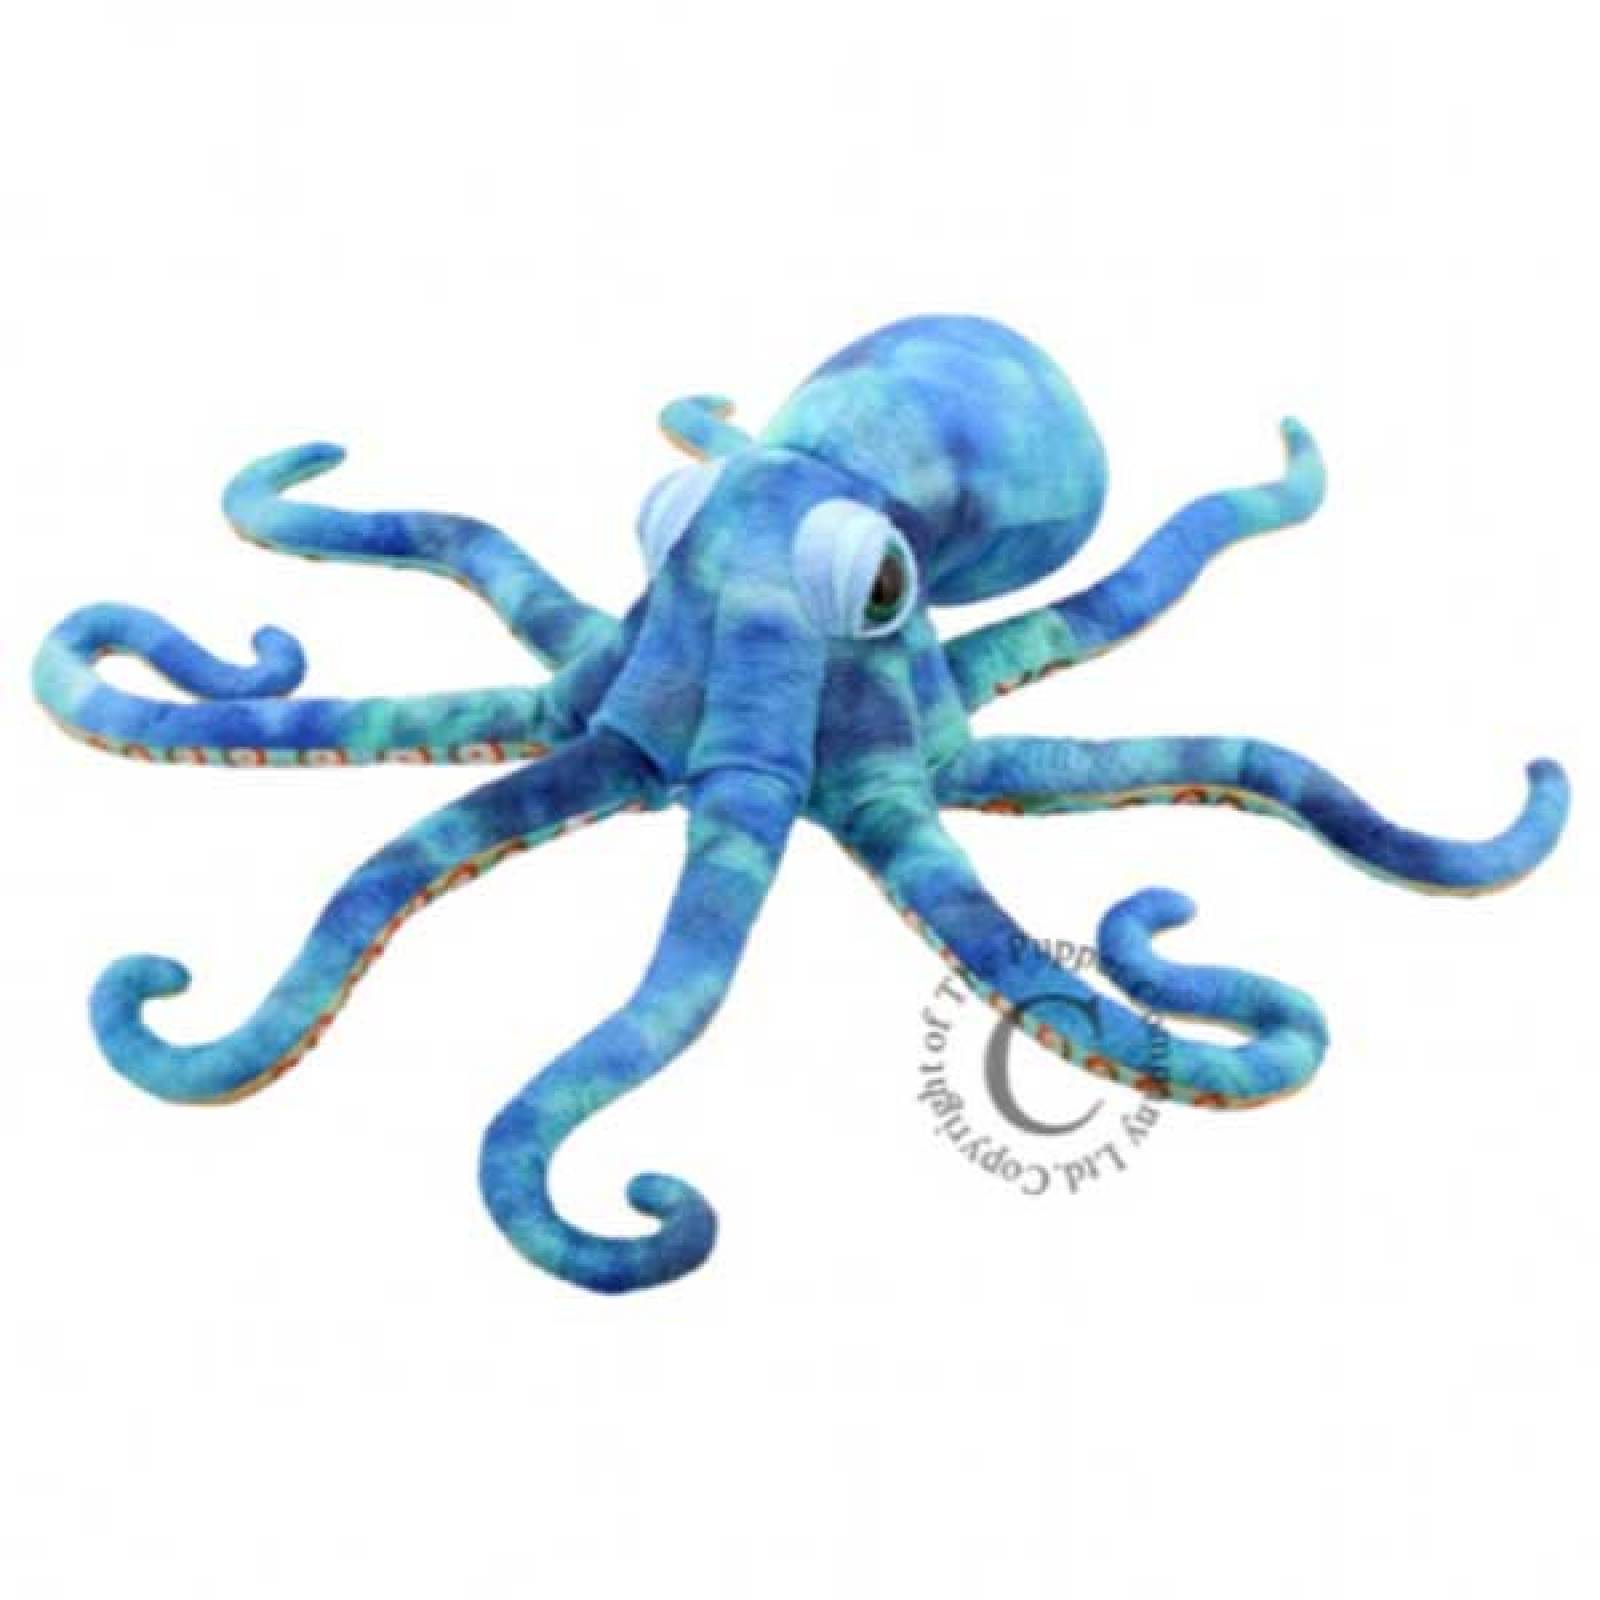 Octopus - Large Creature Puppet